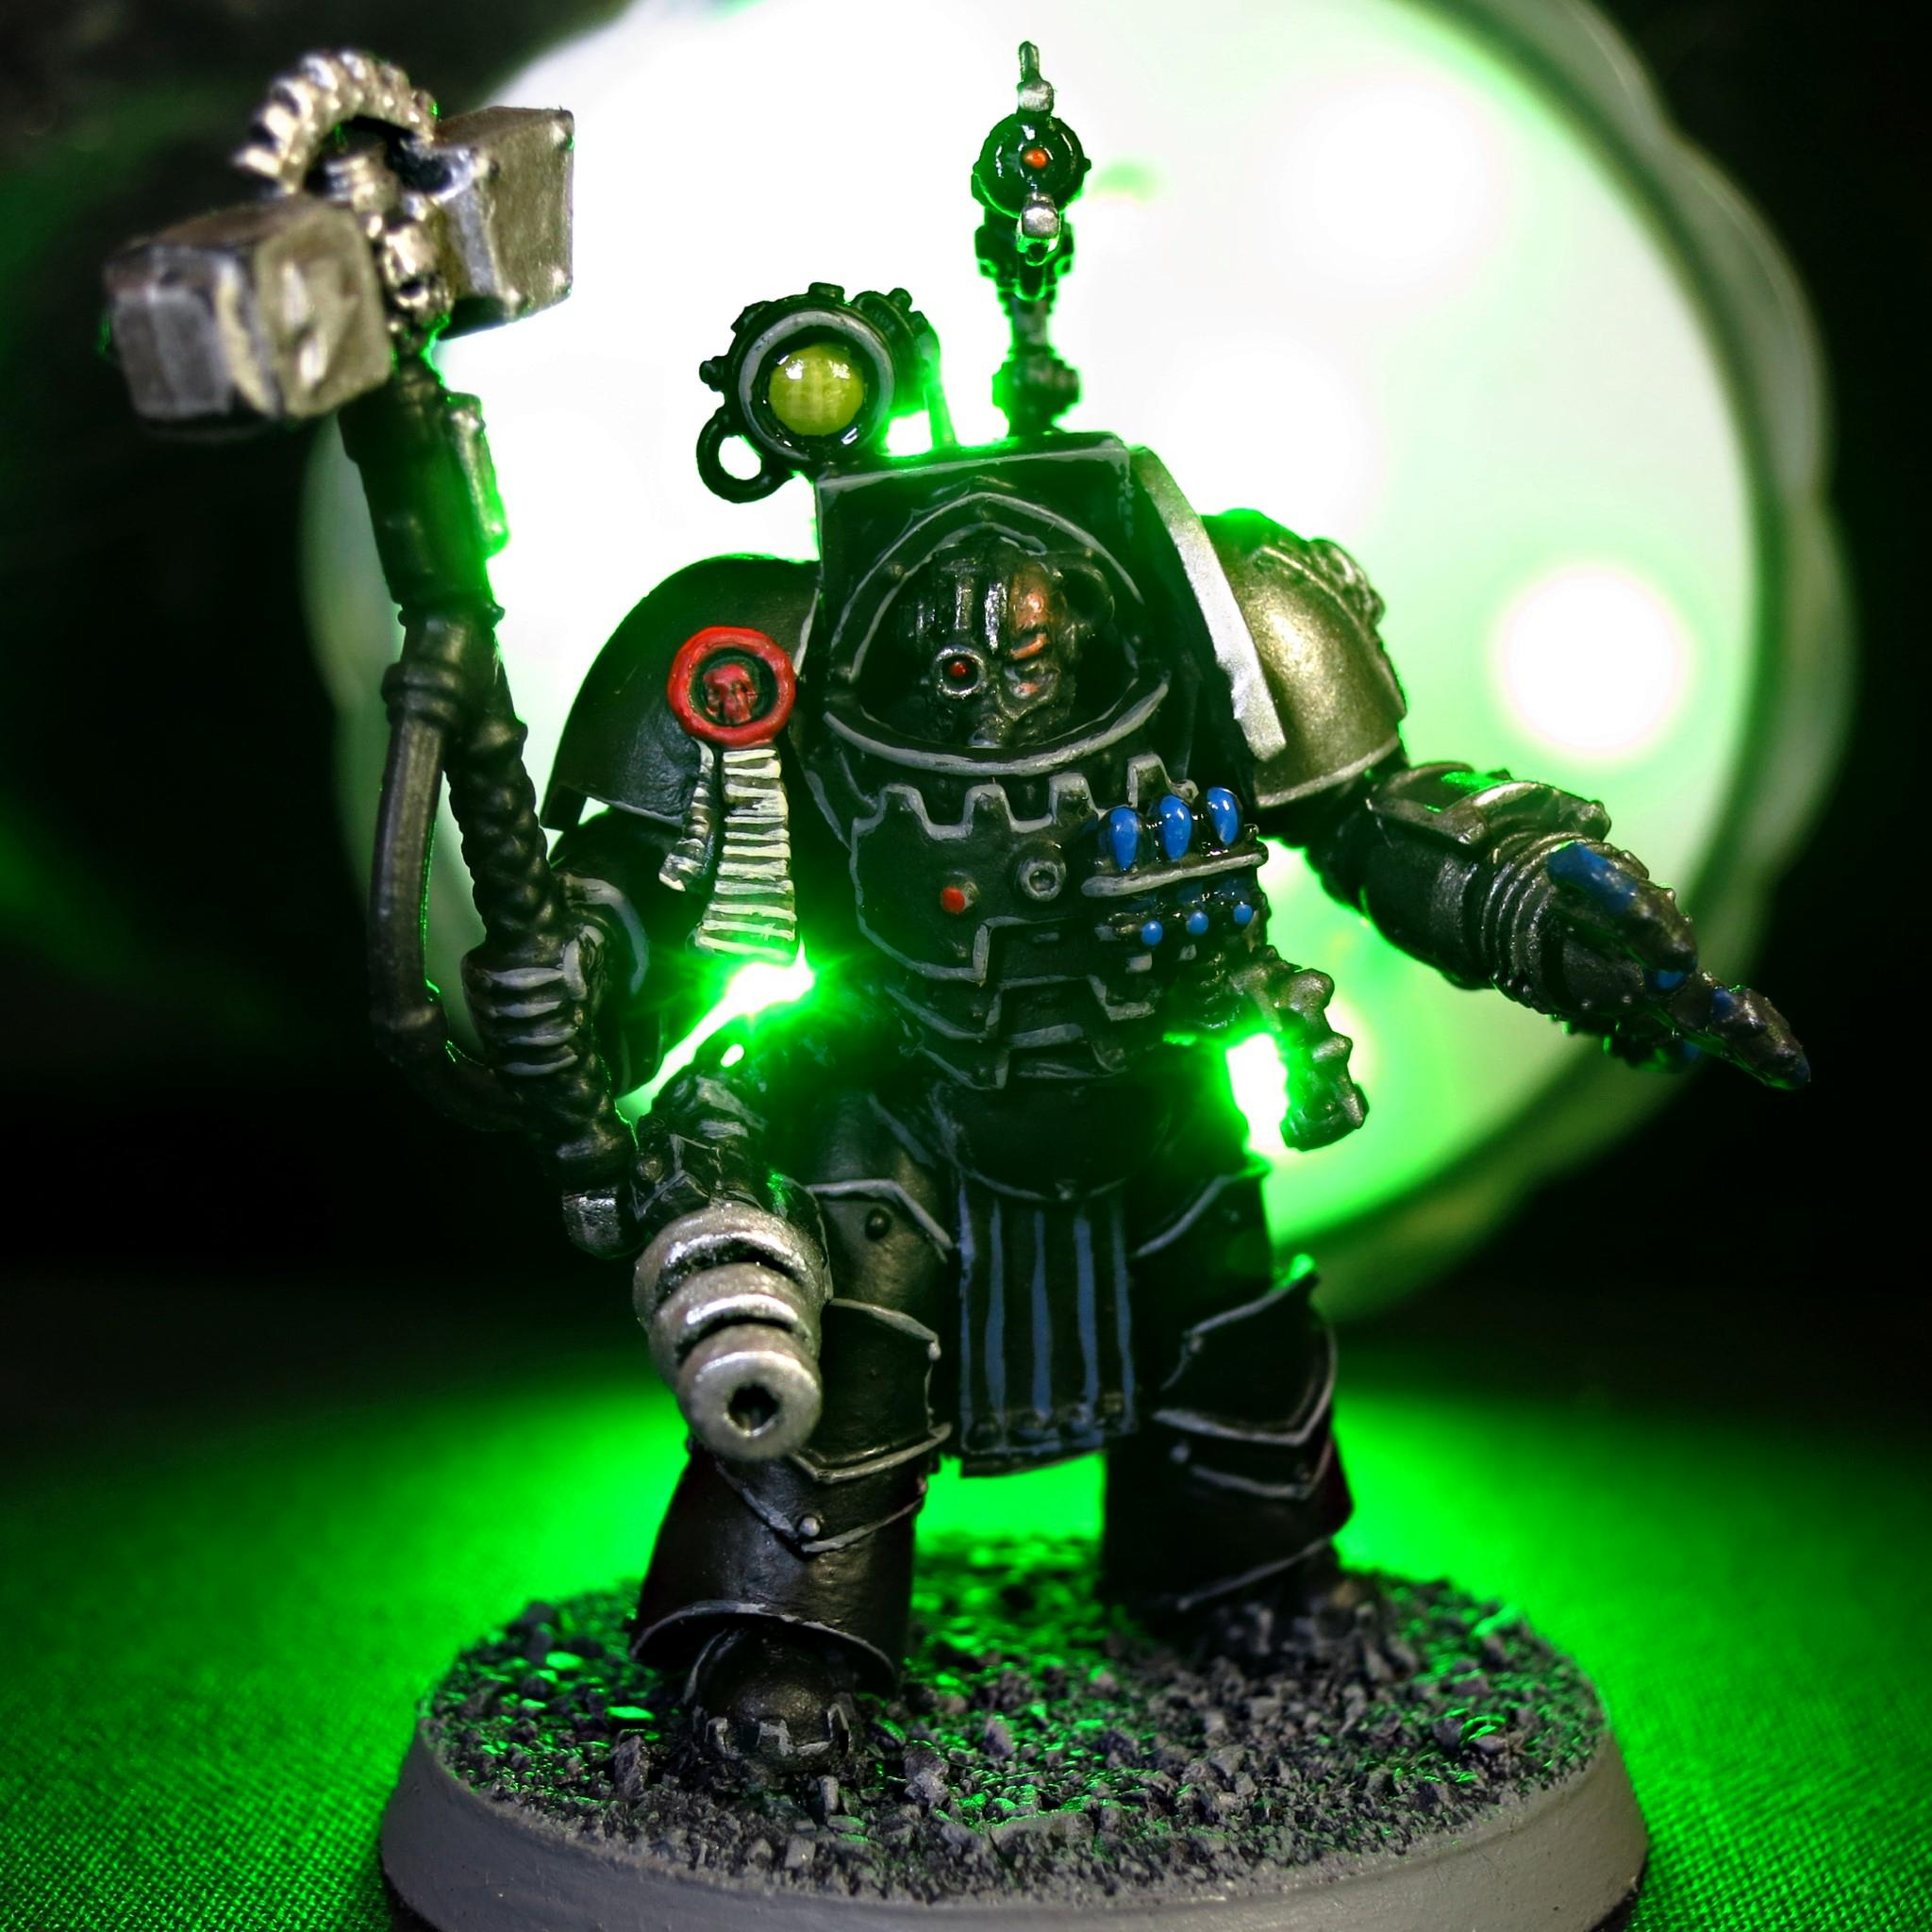 30k, Cataphracti Armour, Cataphracti Terminator, Count As Perturabo, Deathwatch, Deathwatch Mechanicus Forge Lord, Forge Lord, Inquisition, Mechanicus, Mechanicus Magos, Ordos Xenos, Perturabo, Warhammer 40,000